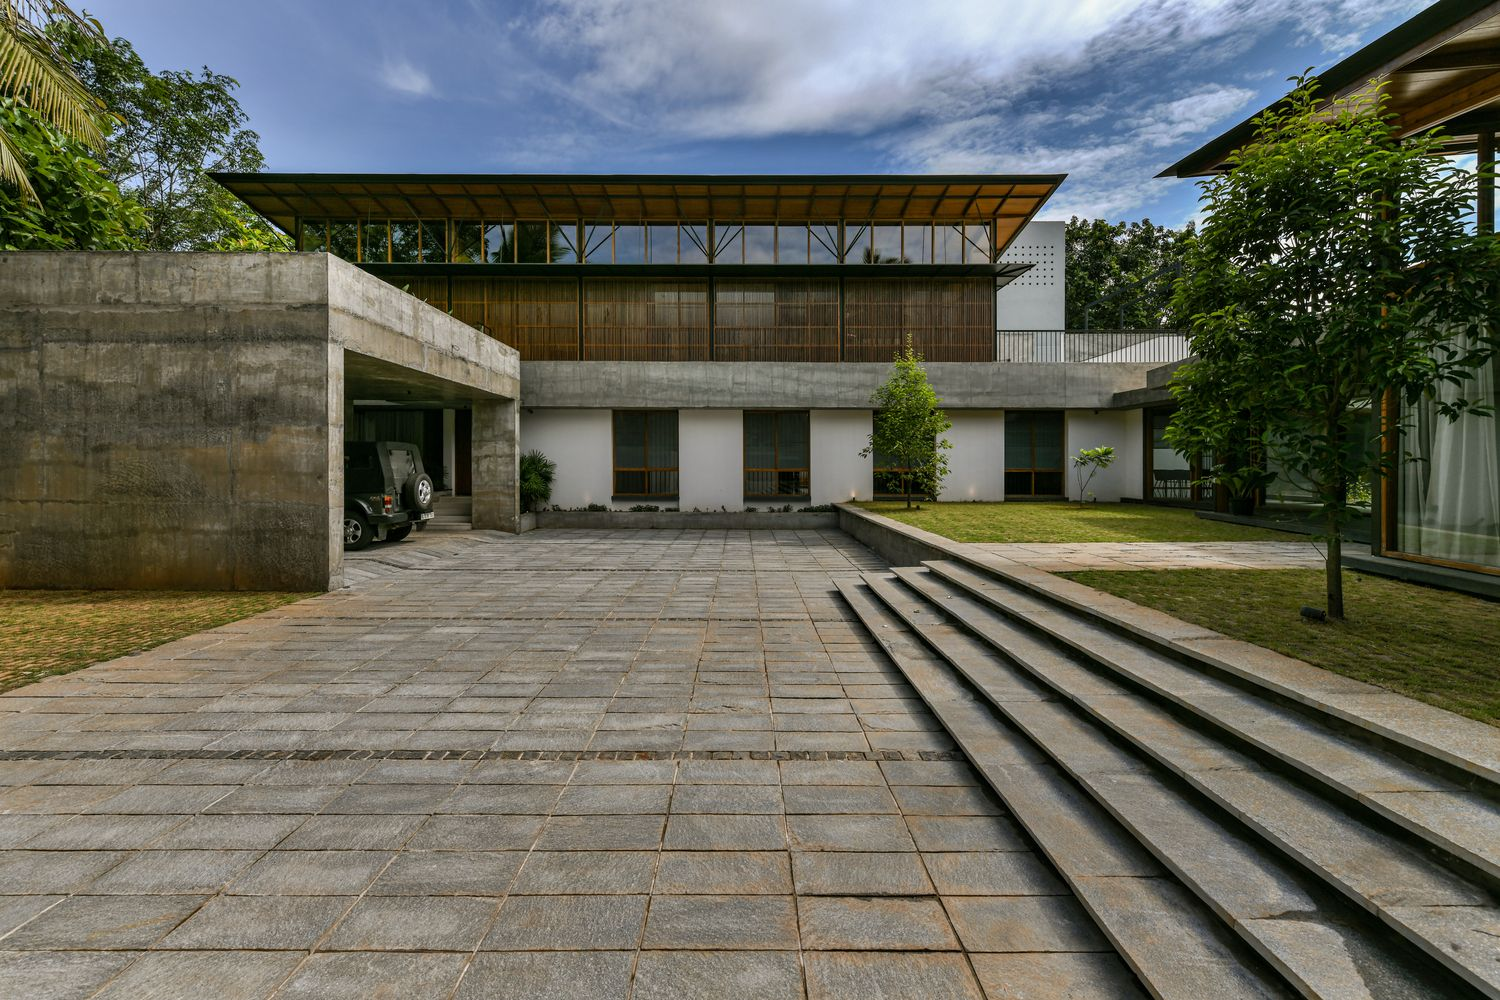 Gallery of The Skew House / Thought Parallels 45 House